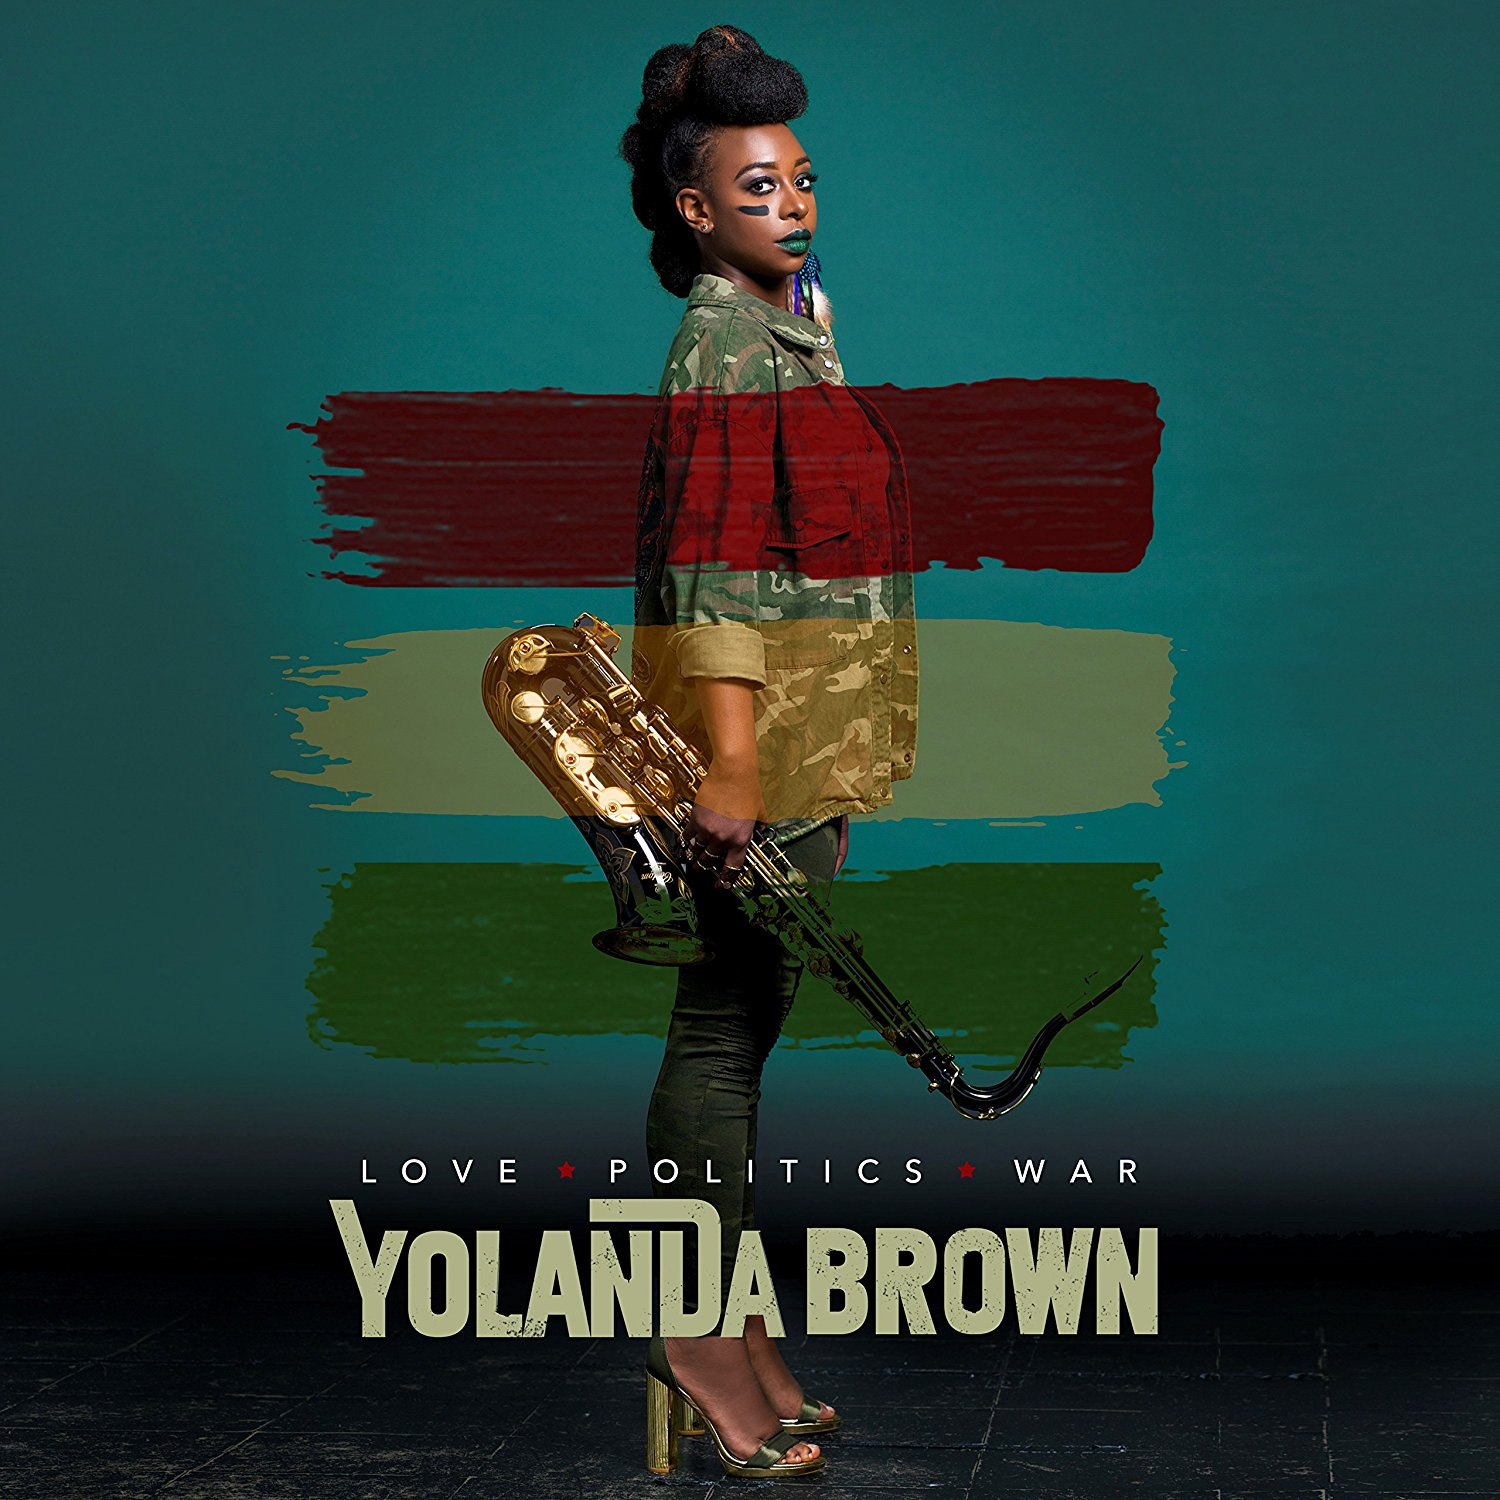 yolanda brown album.jpg